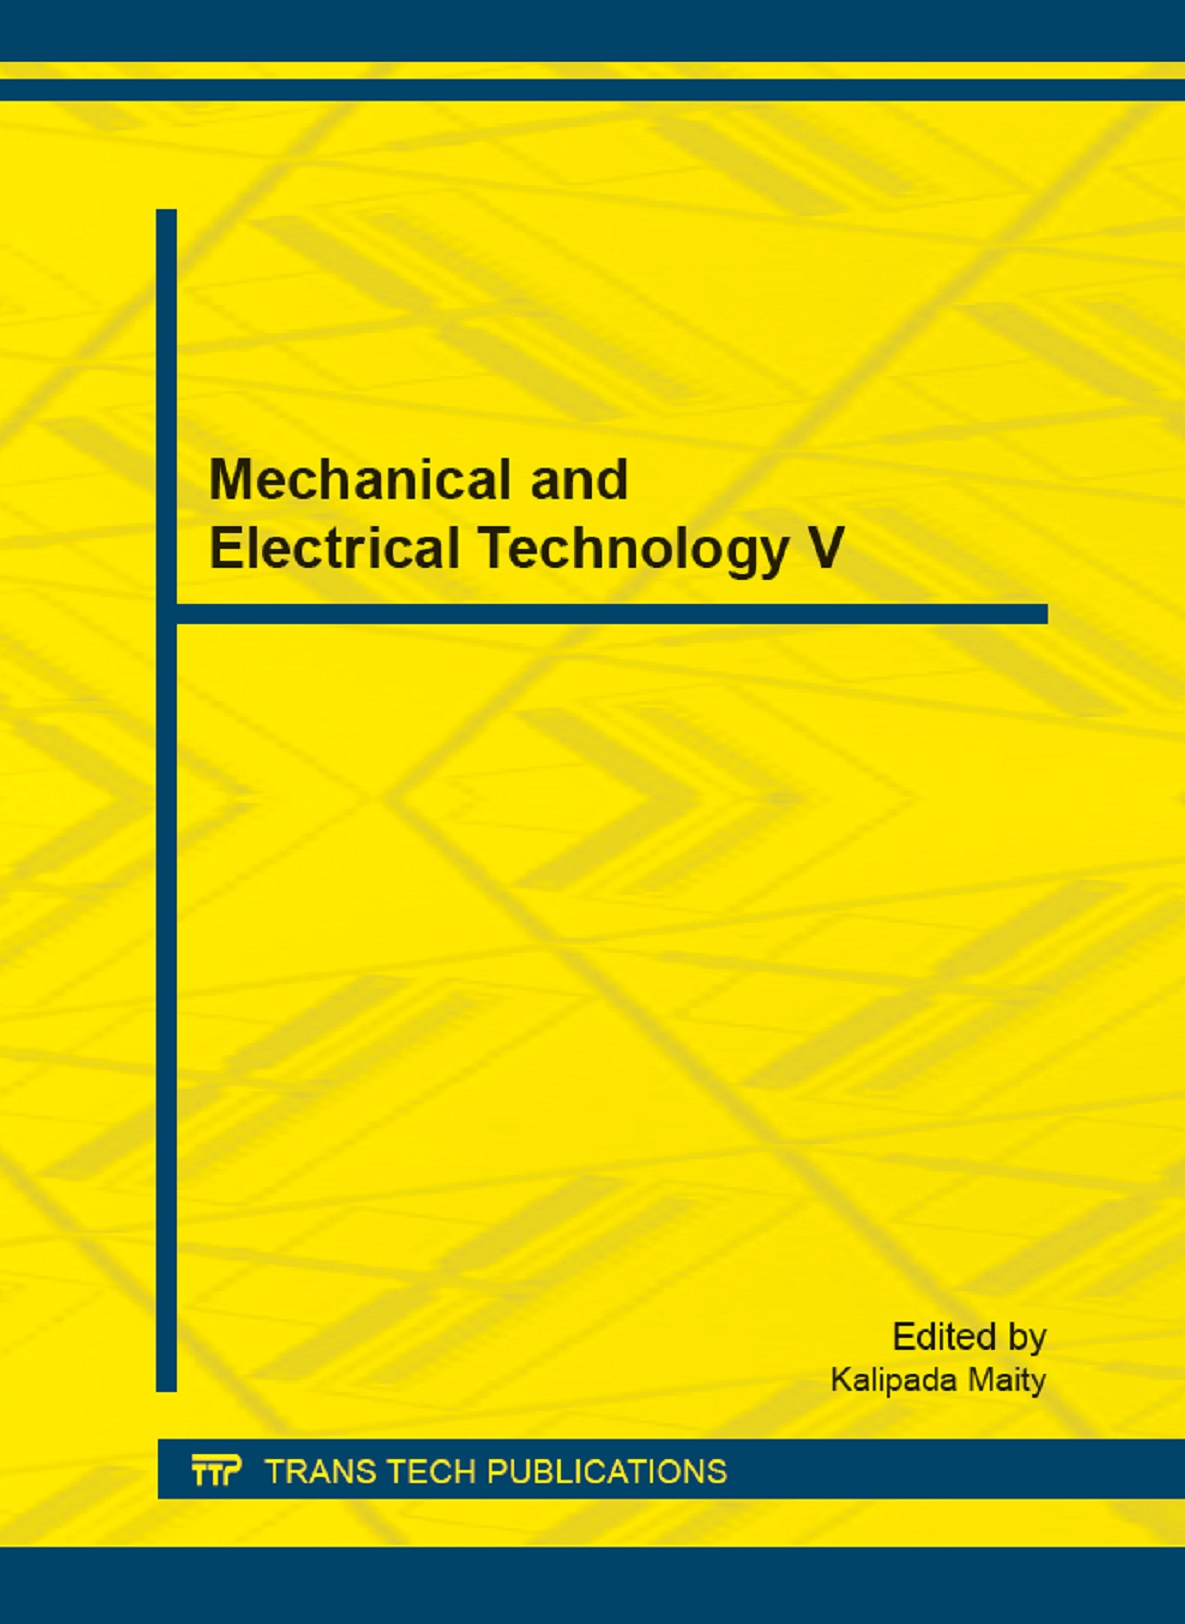 Mechanical and Electrical Technology V